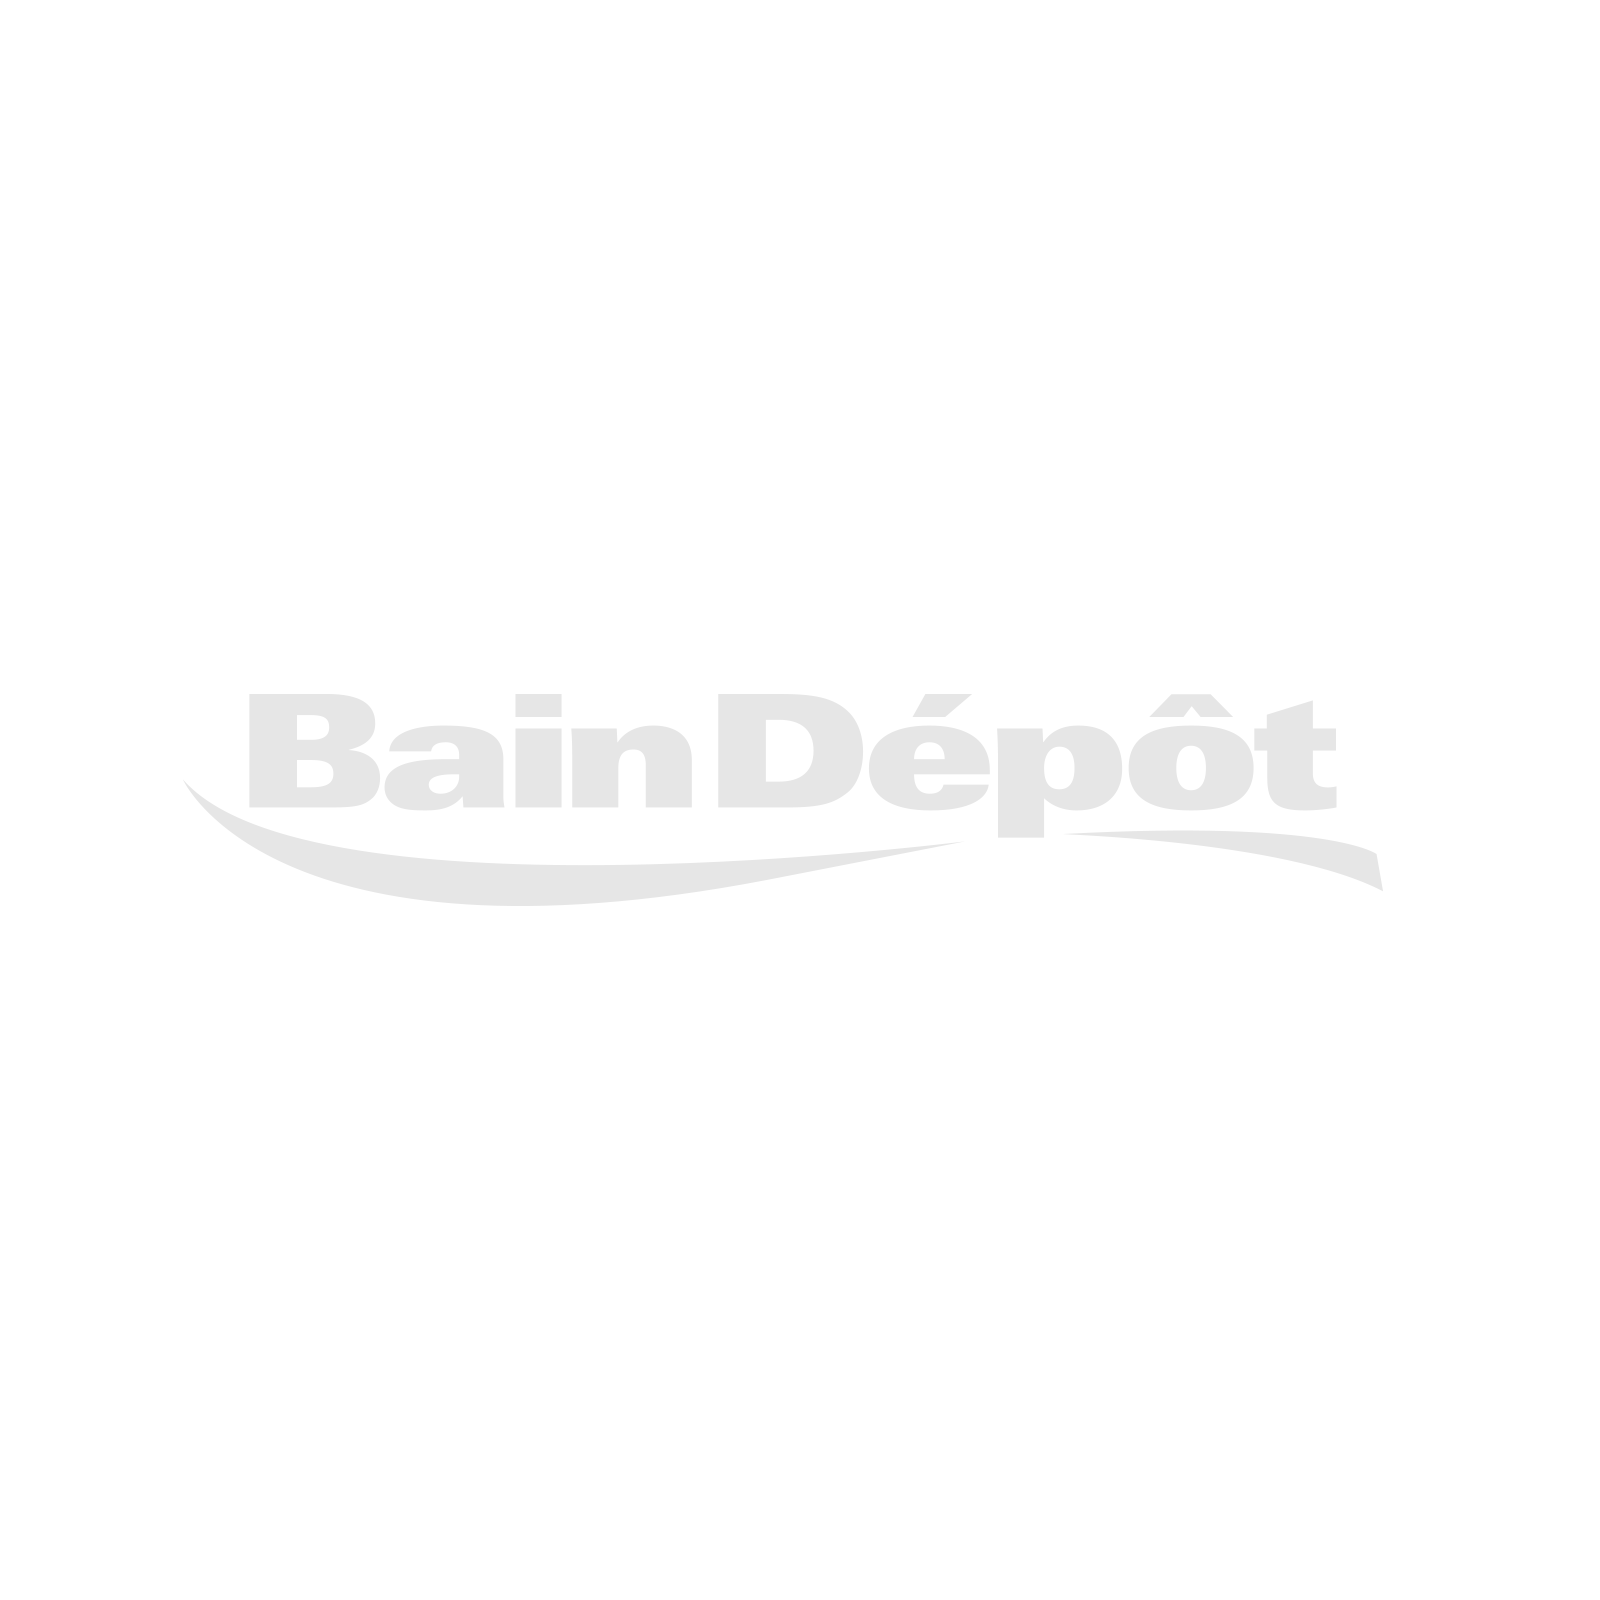 Chrome shower faucet kit with a 5-jet hand shower